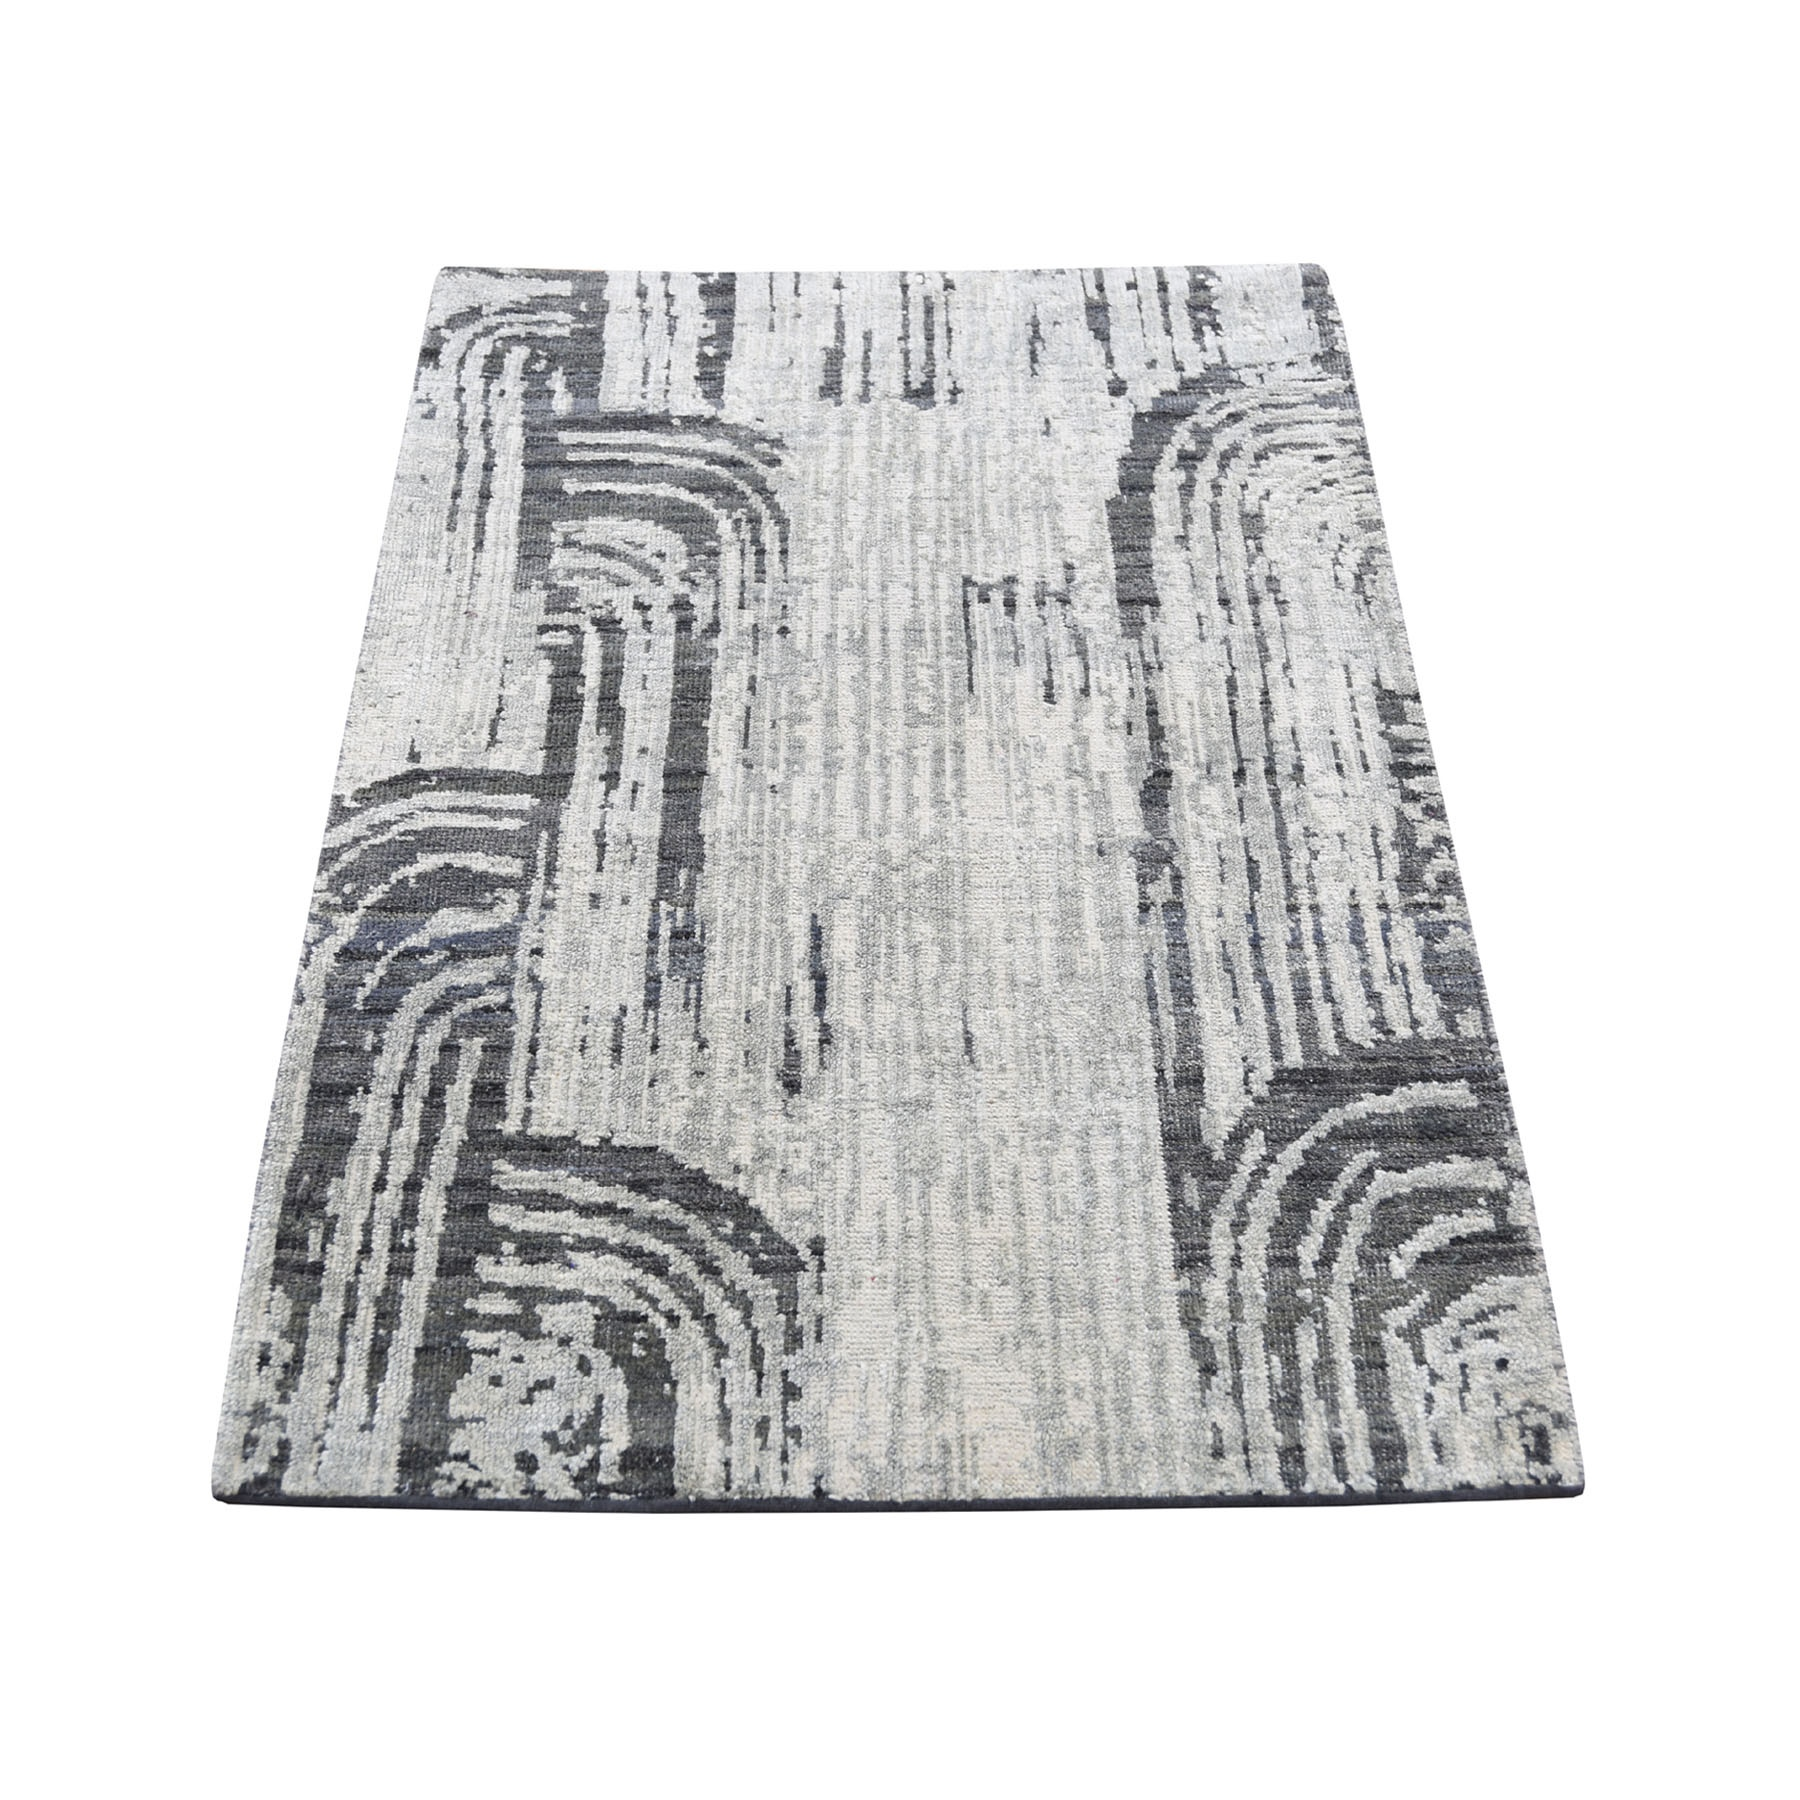 2-x3-2  THE CANE, Pure Silk With Textured Wool Hand-Knotted Oriental Rug Sample